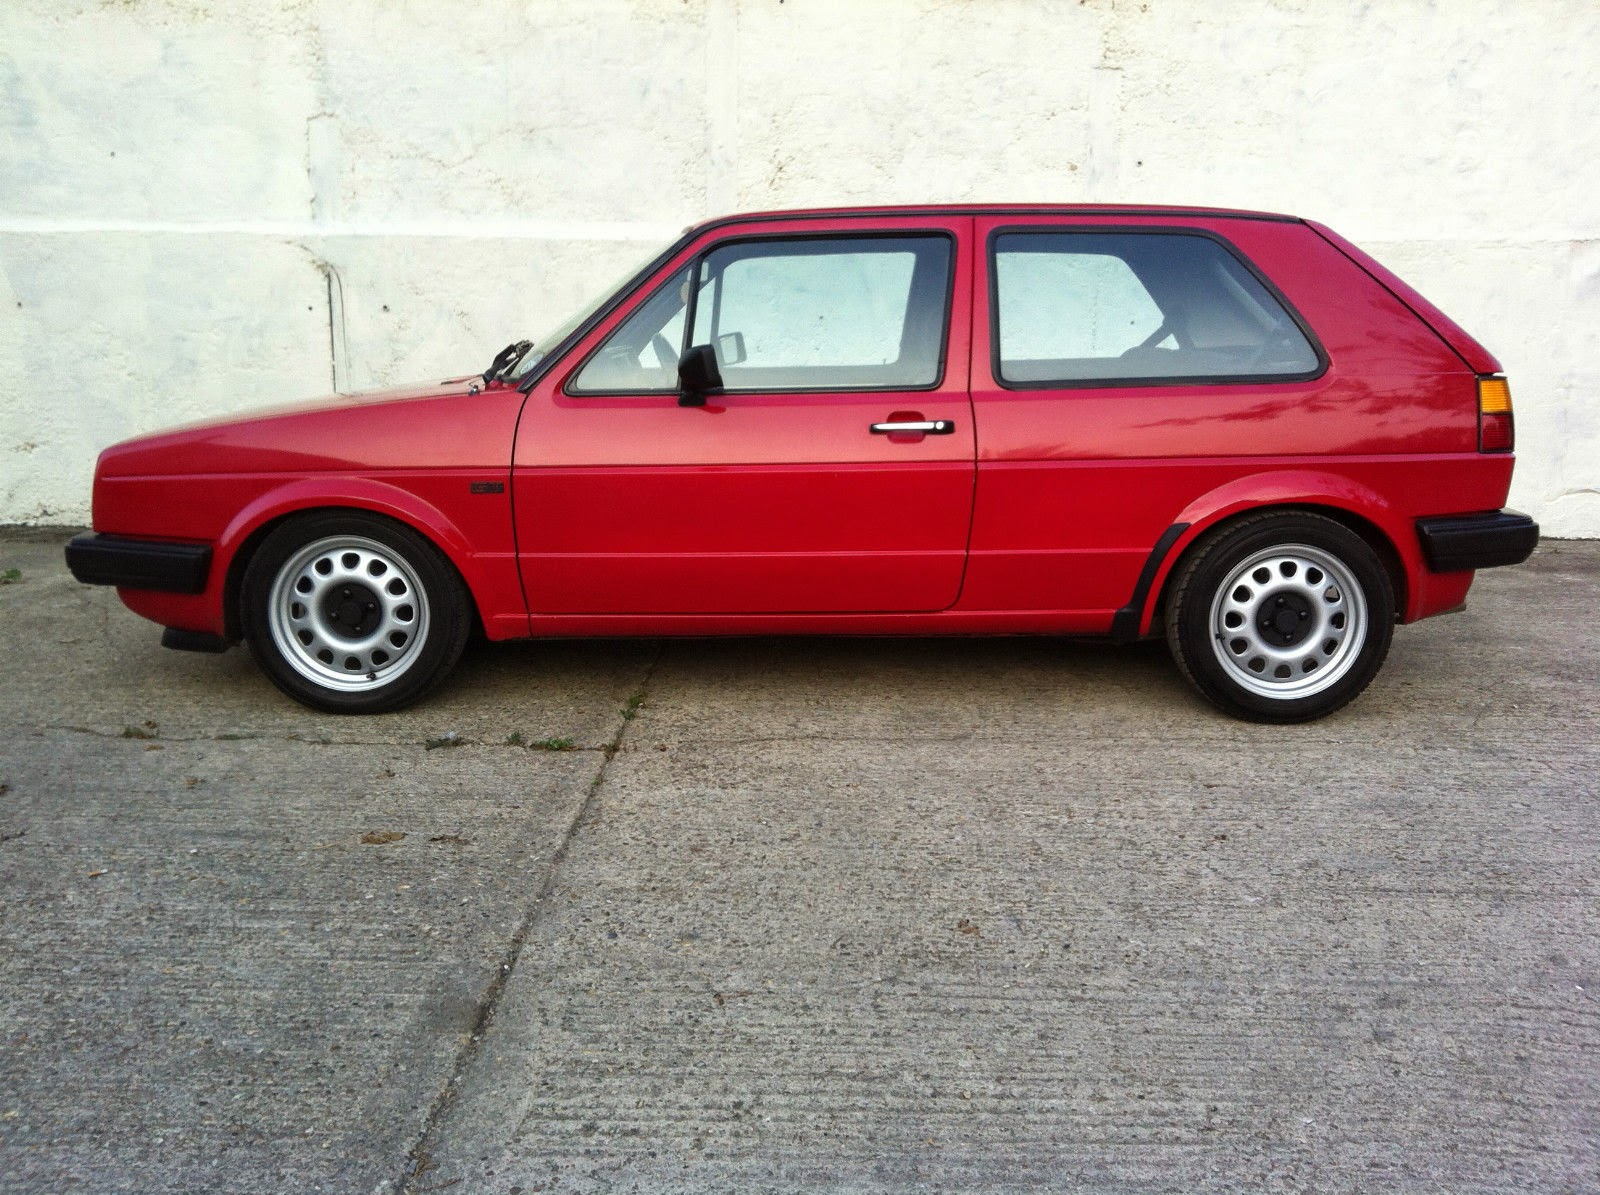 1985 volkswagen golf gt mk2 not gti buy classic volks. Black Bedroom Furniture Sets. Home Design Ideas